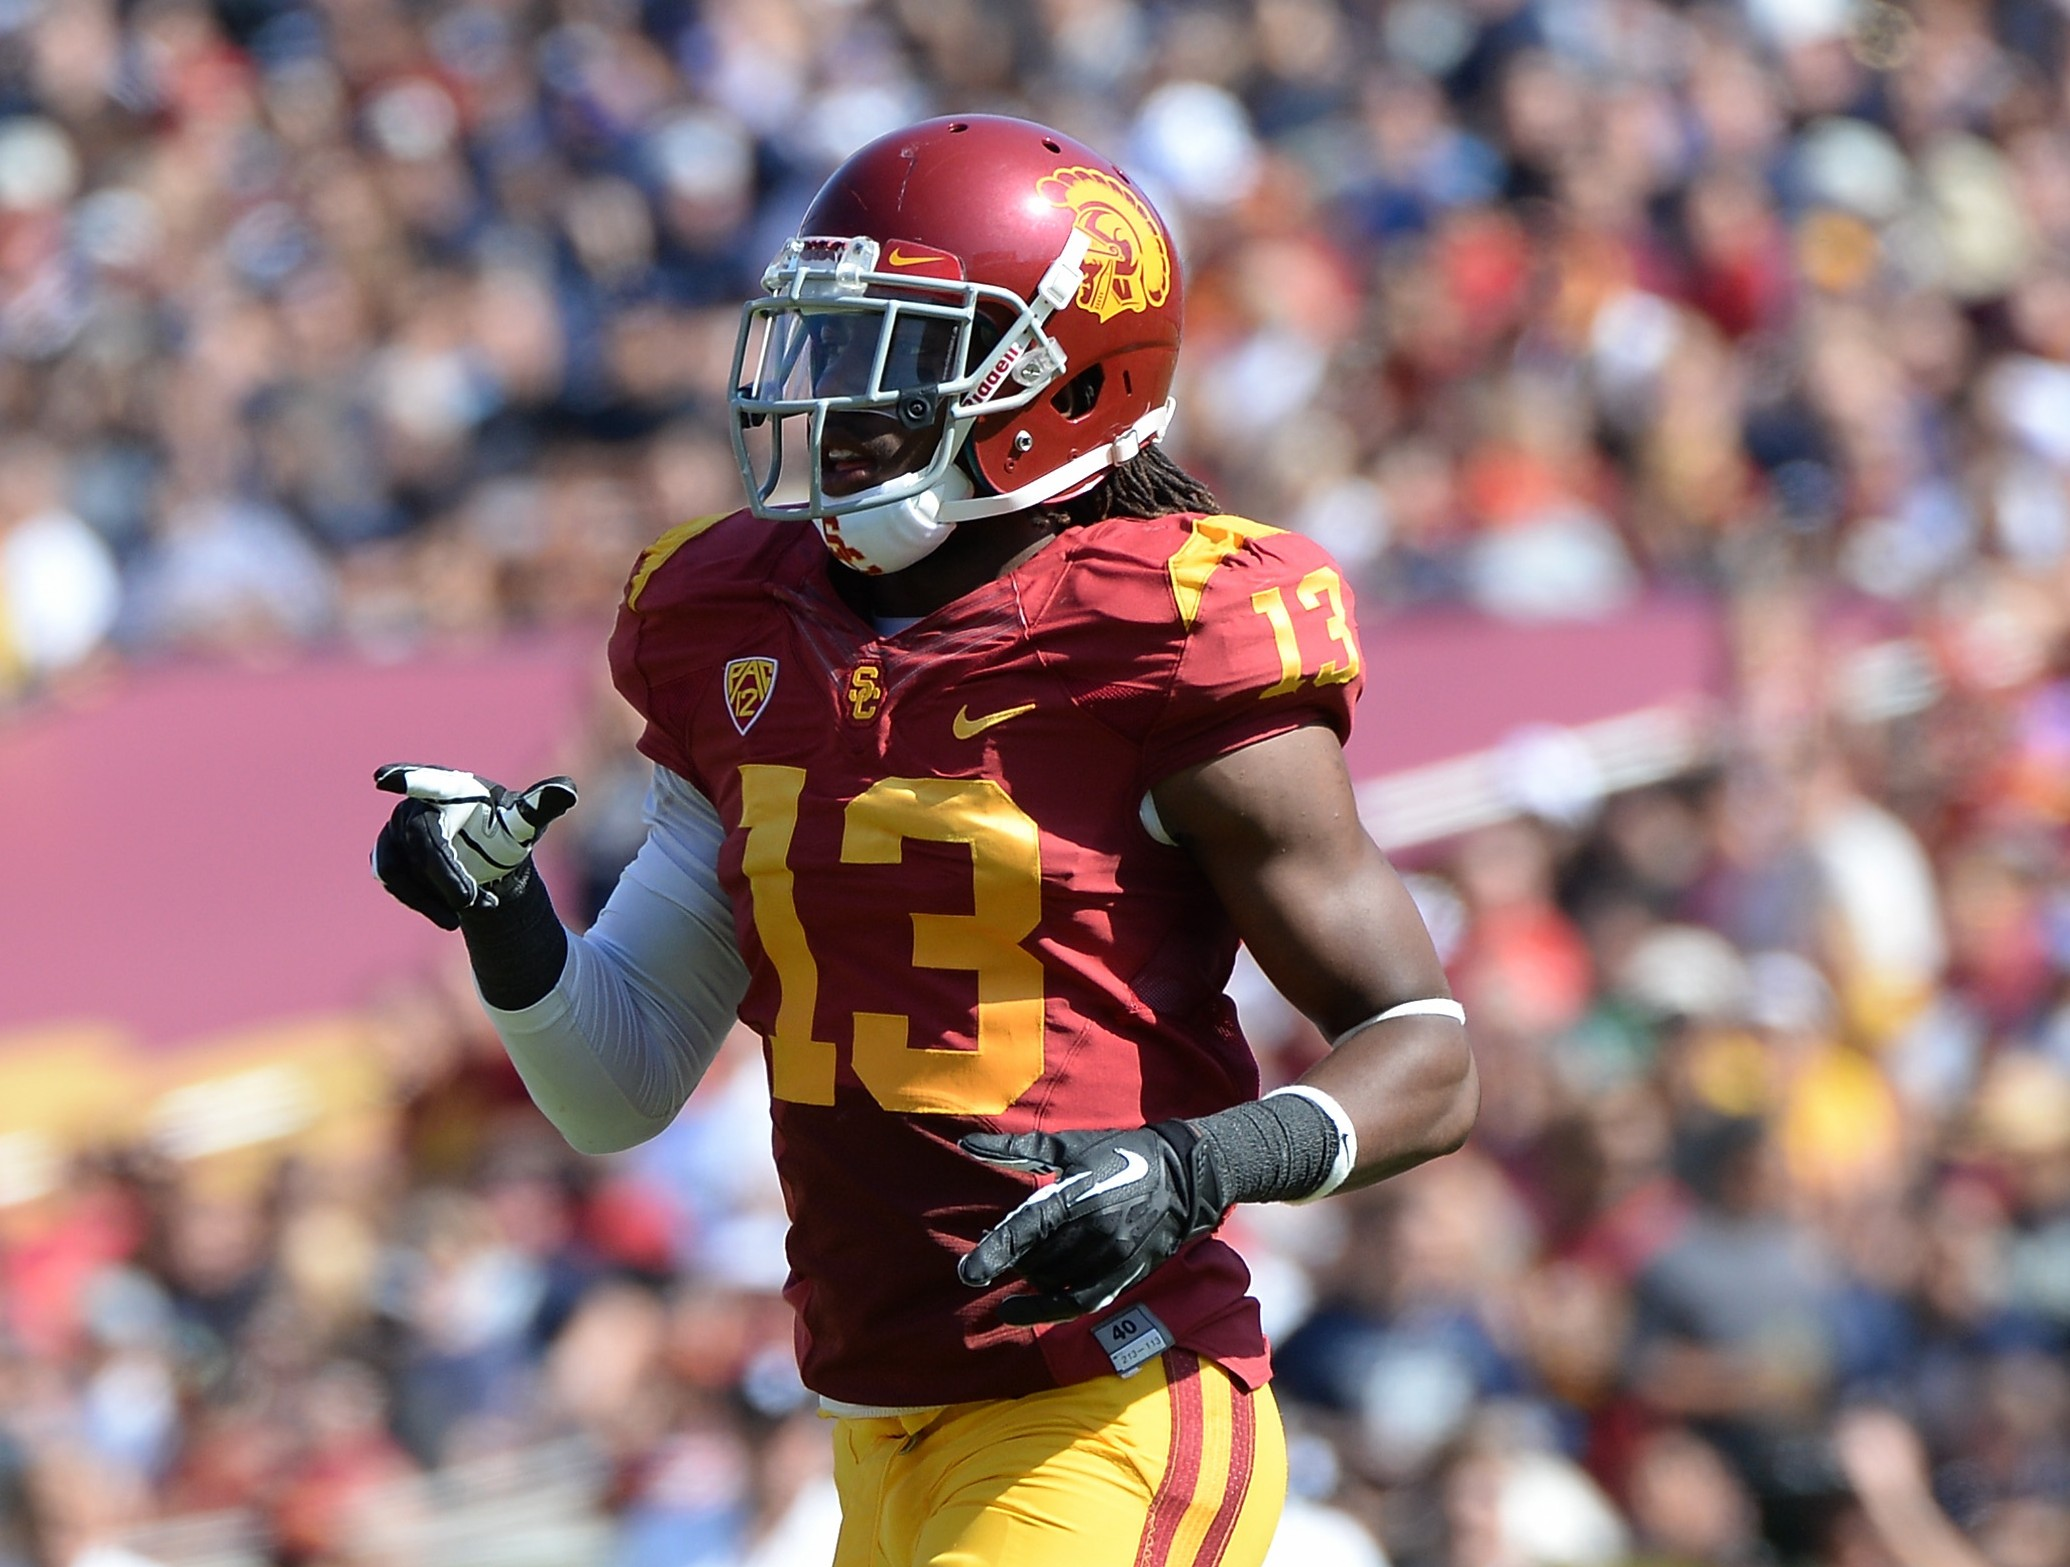 Kevon Seymour of the USC Trojans during a game against Utah State at the Los Angeles Memorial Coliseum on September 21, 2013. Getty Images)